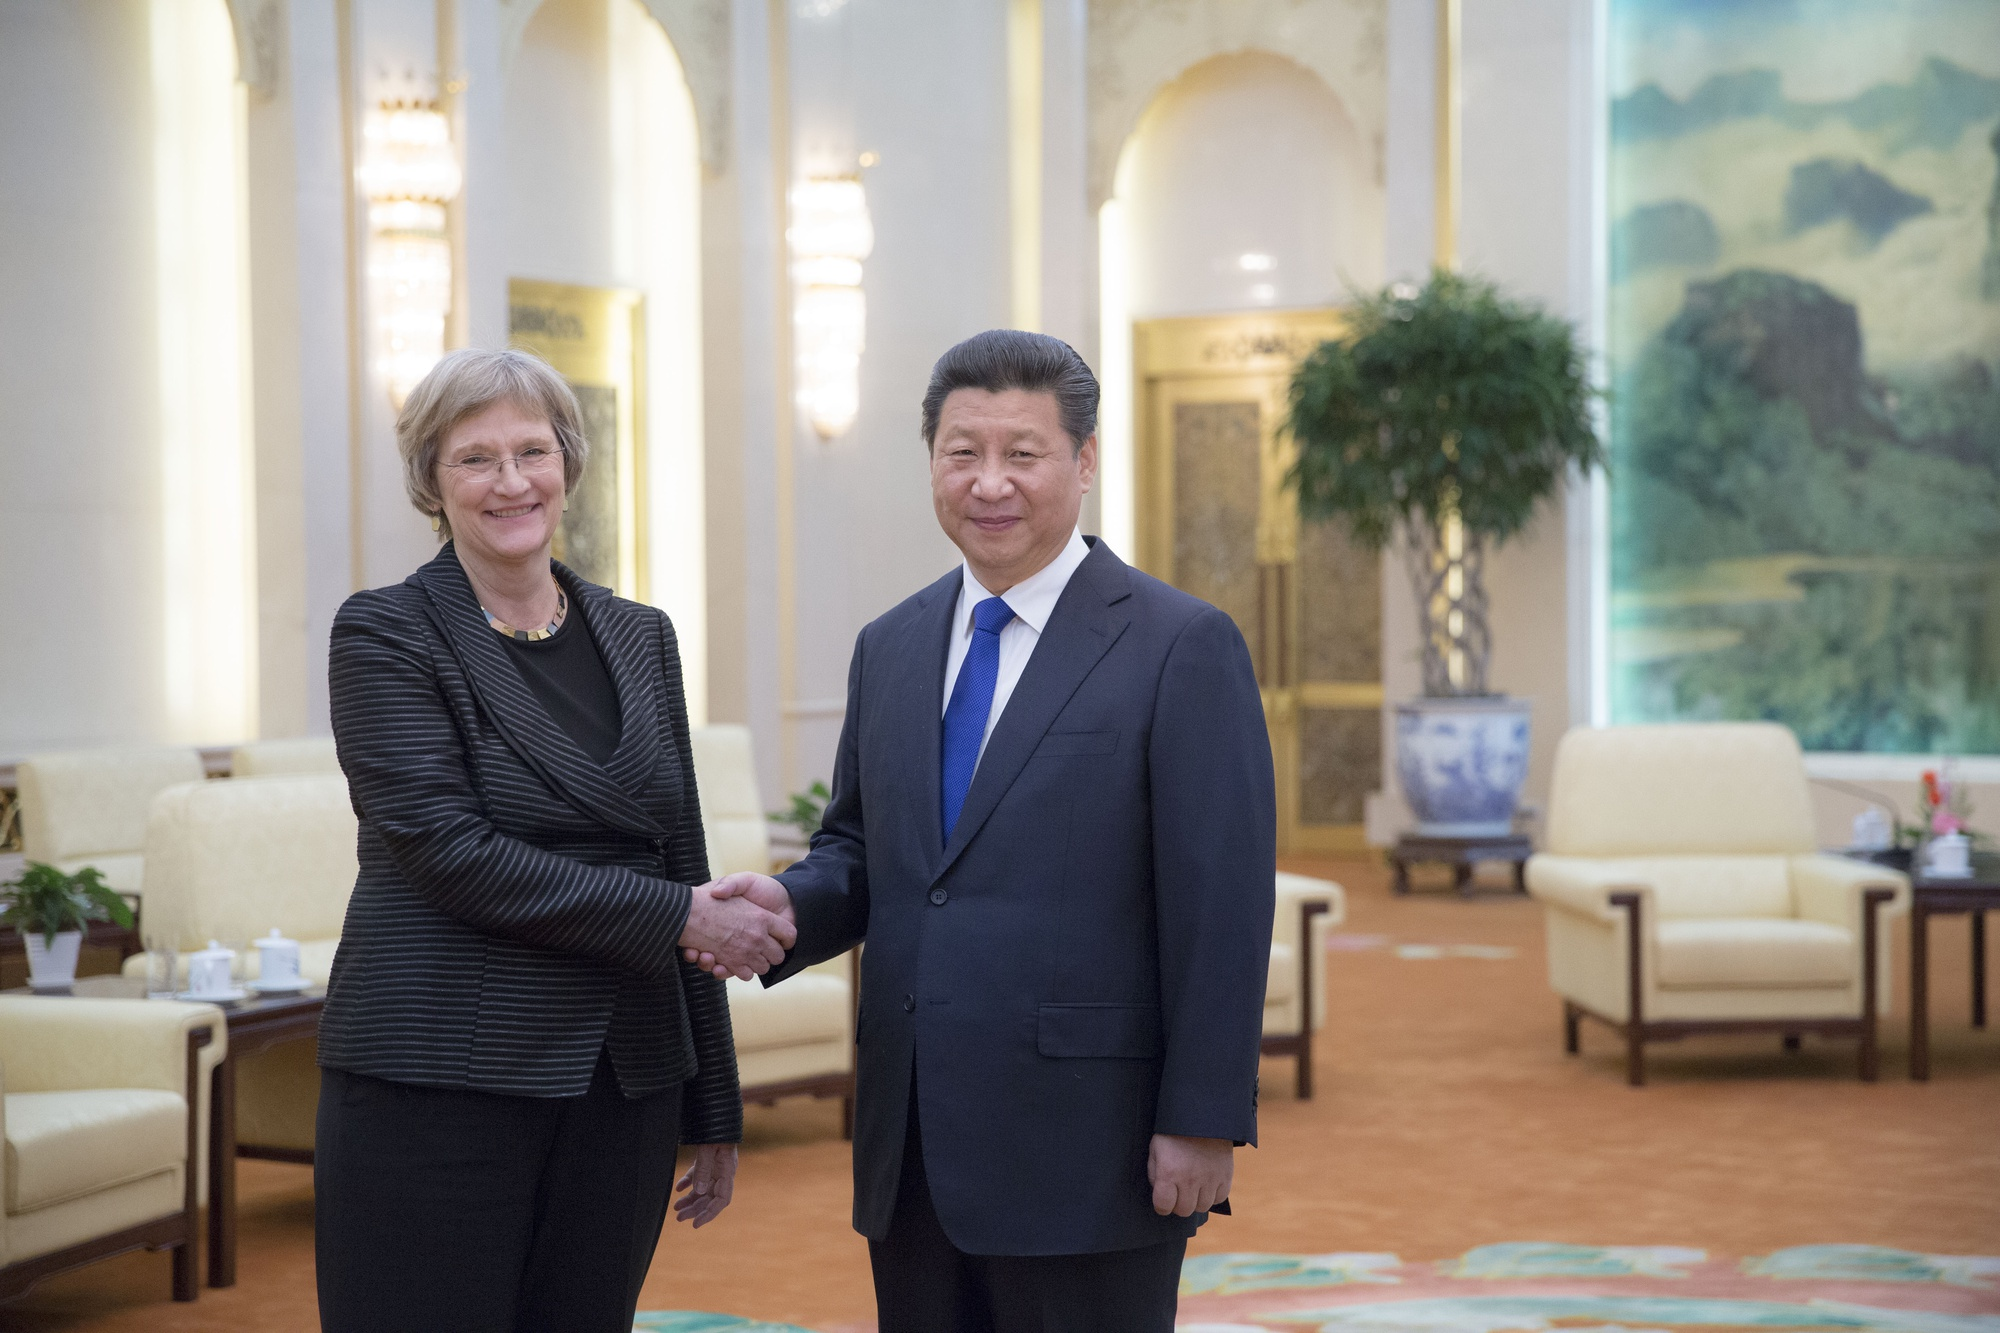 University President Drew G. Faust with President of China Xi Jinping